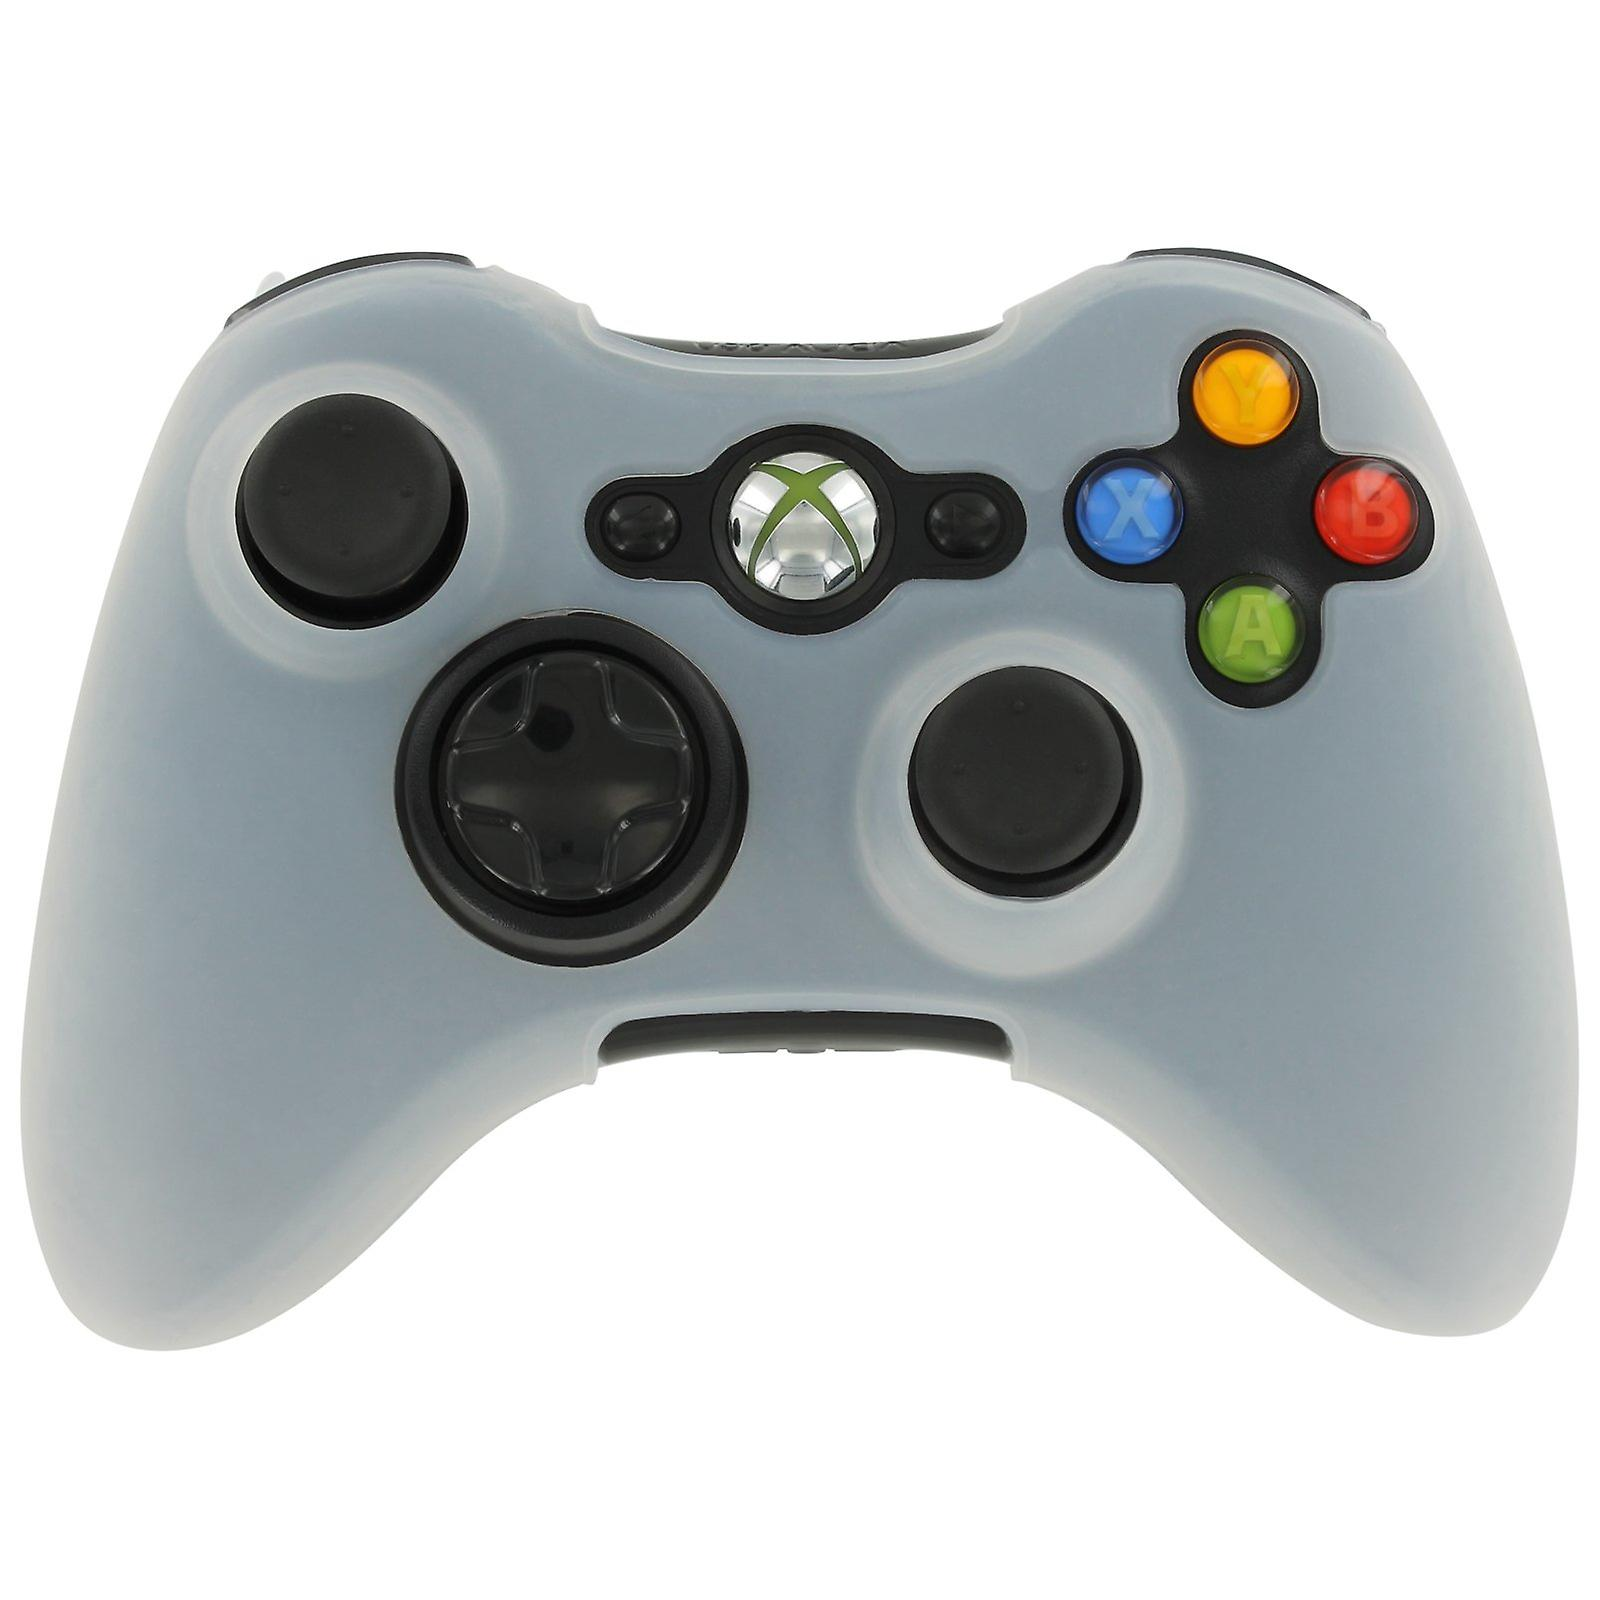 Silicone case for xbox 360 controller skin protector cover grip - white